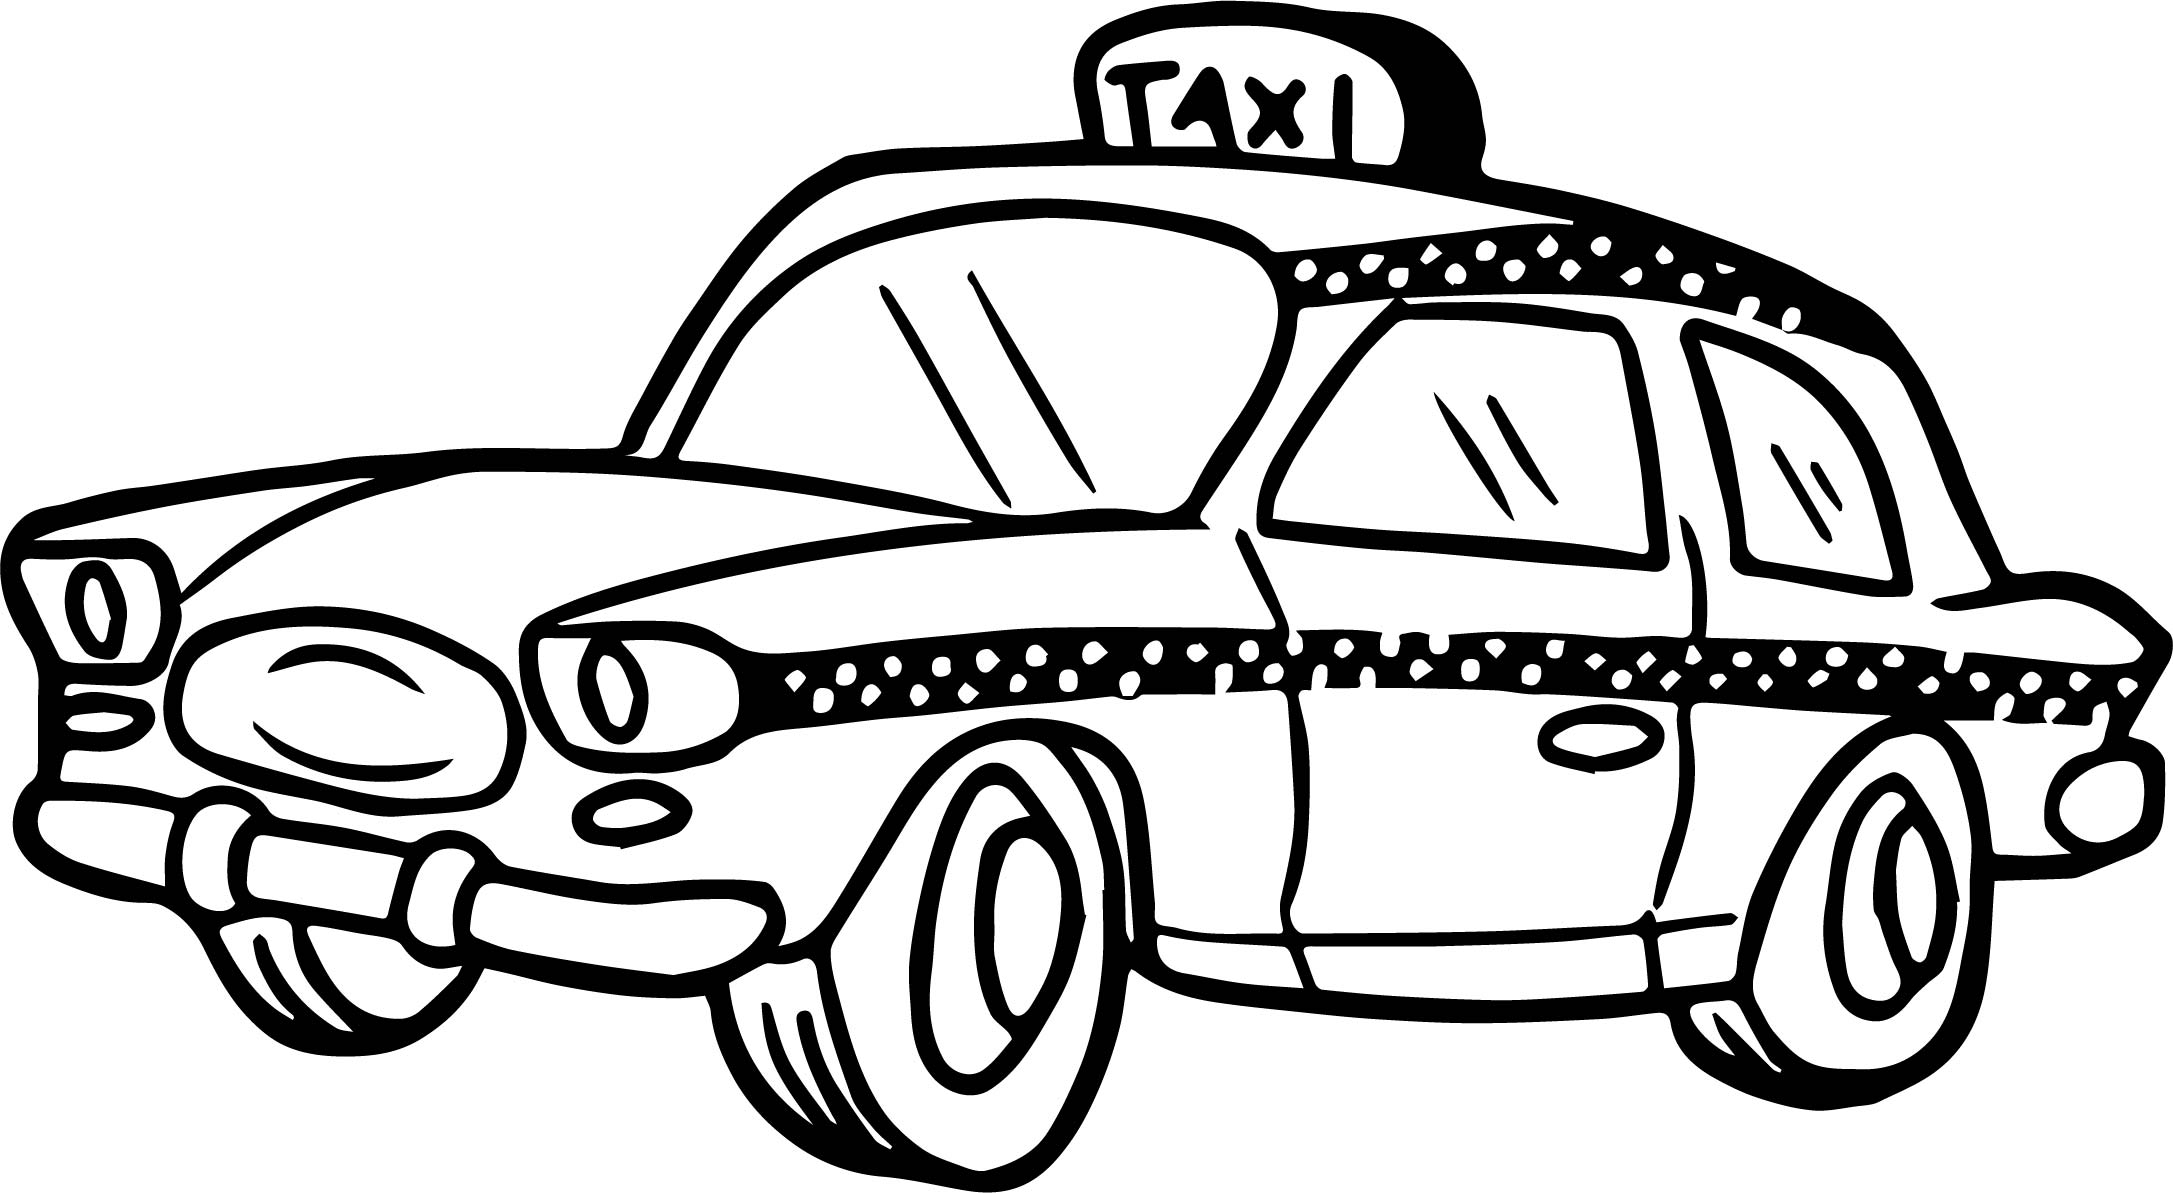 Taxi clipart black and white 5 » Clipart Station.